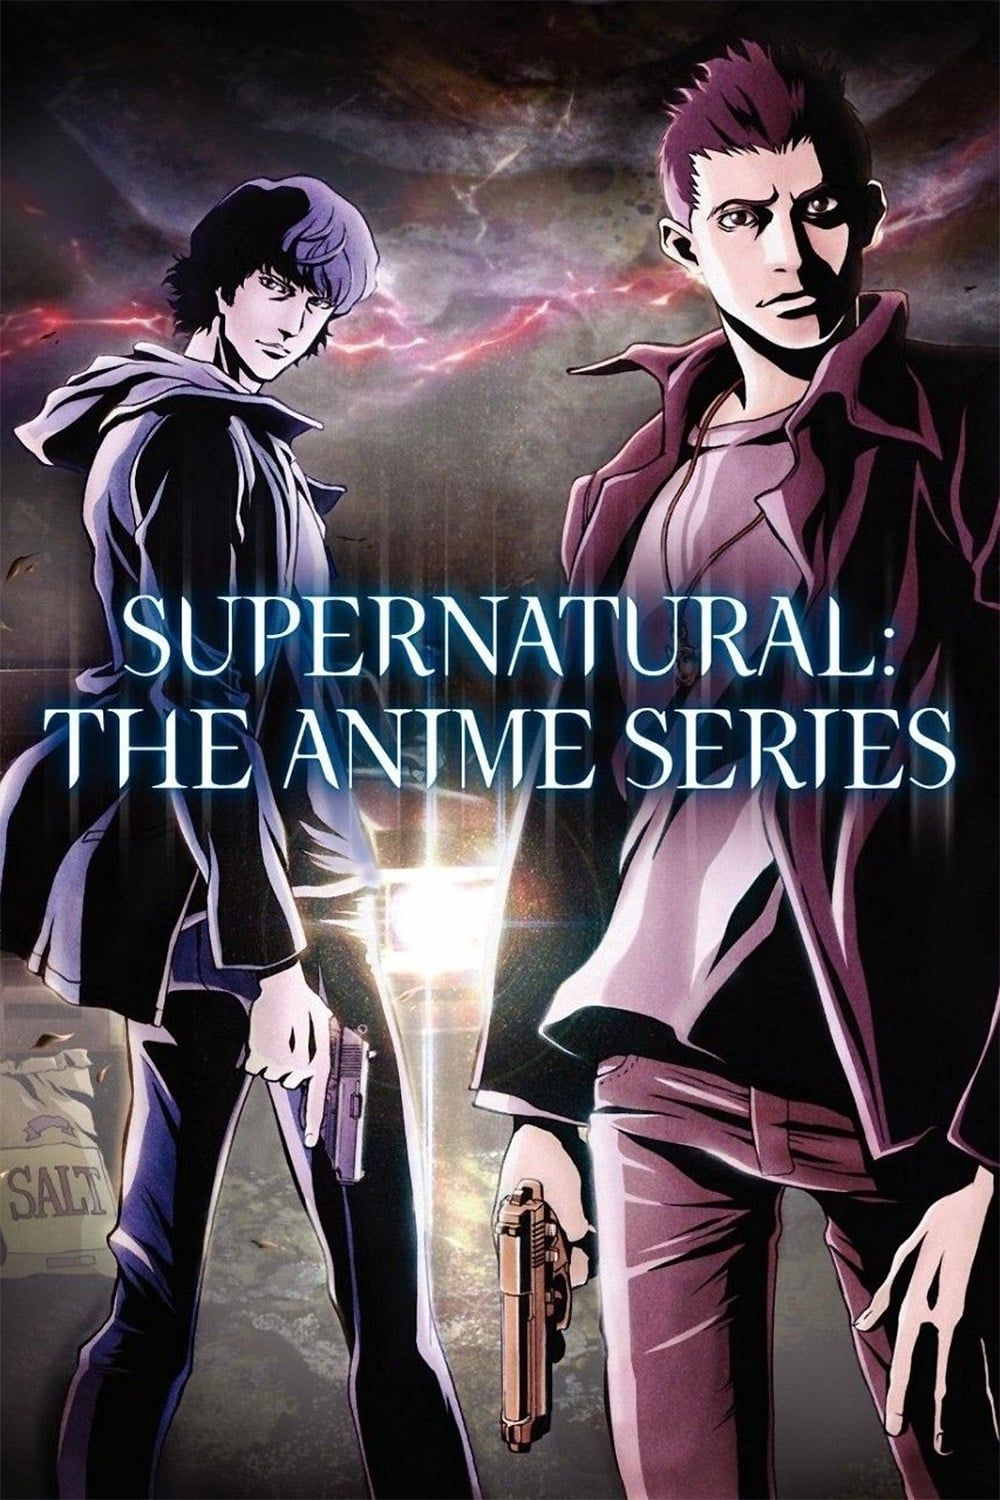 Supernatural The Anime Series in 2020 Anime